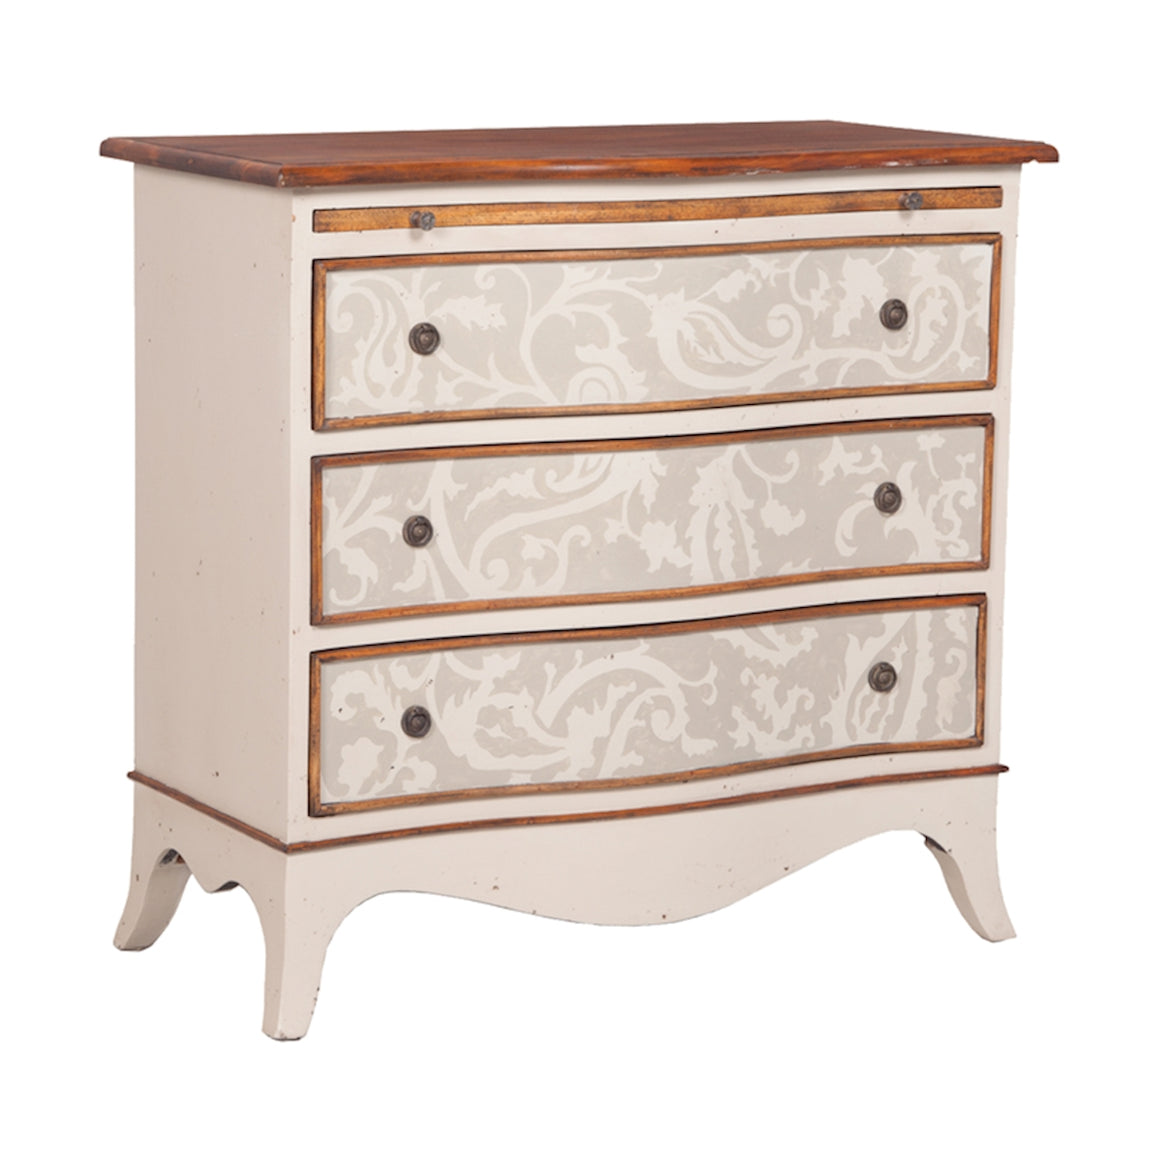 3-Drawer Acanthus Vine Chest